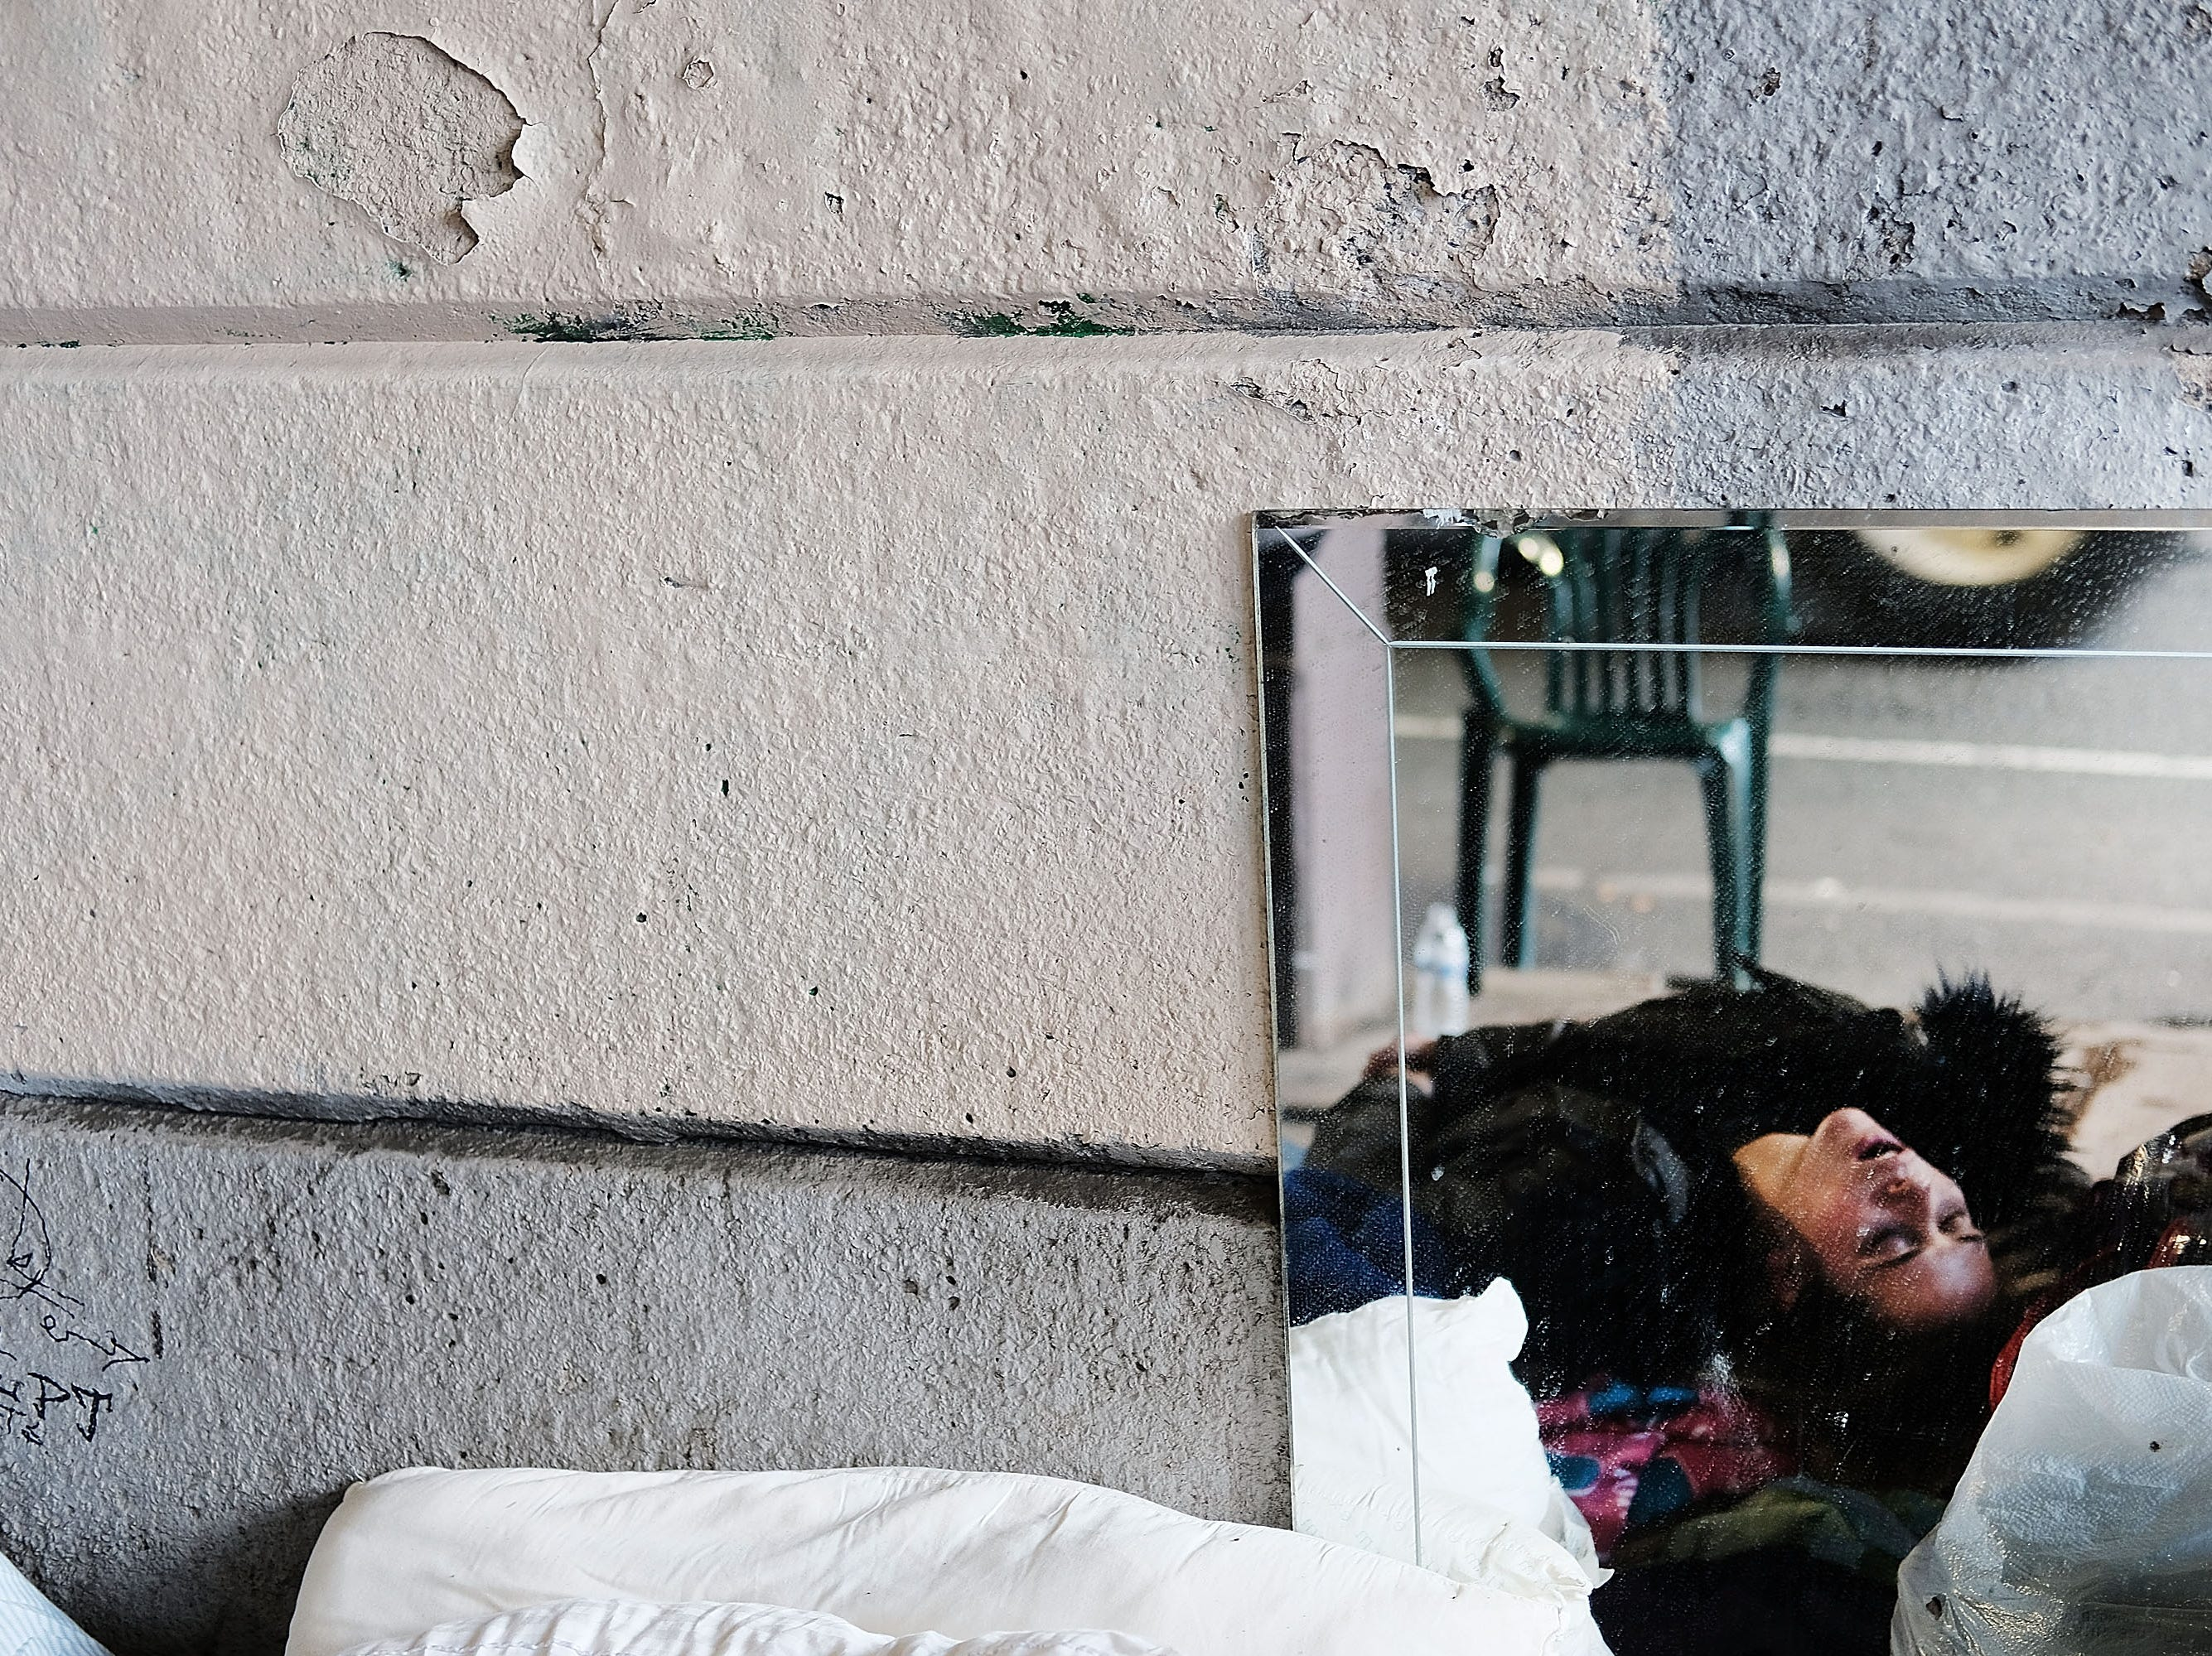 Jan. 24, 2018: A woman, passed out on heroin, is reflected in a mirror under a bridge where she lives with other addicts in the Kensington section of Philadelphia, which has become a hub for heroin use. Over 900 people died in 2016 in Philadelphia from opioid overdoses, a 30 percent increase from 2015.